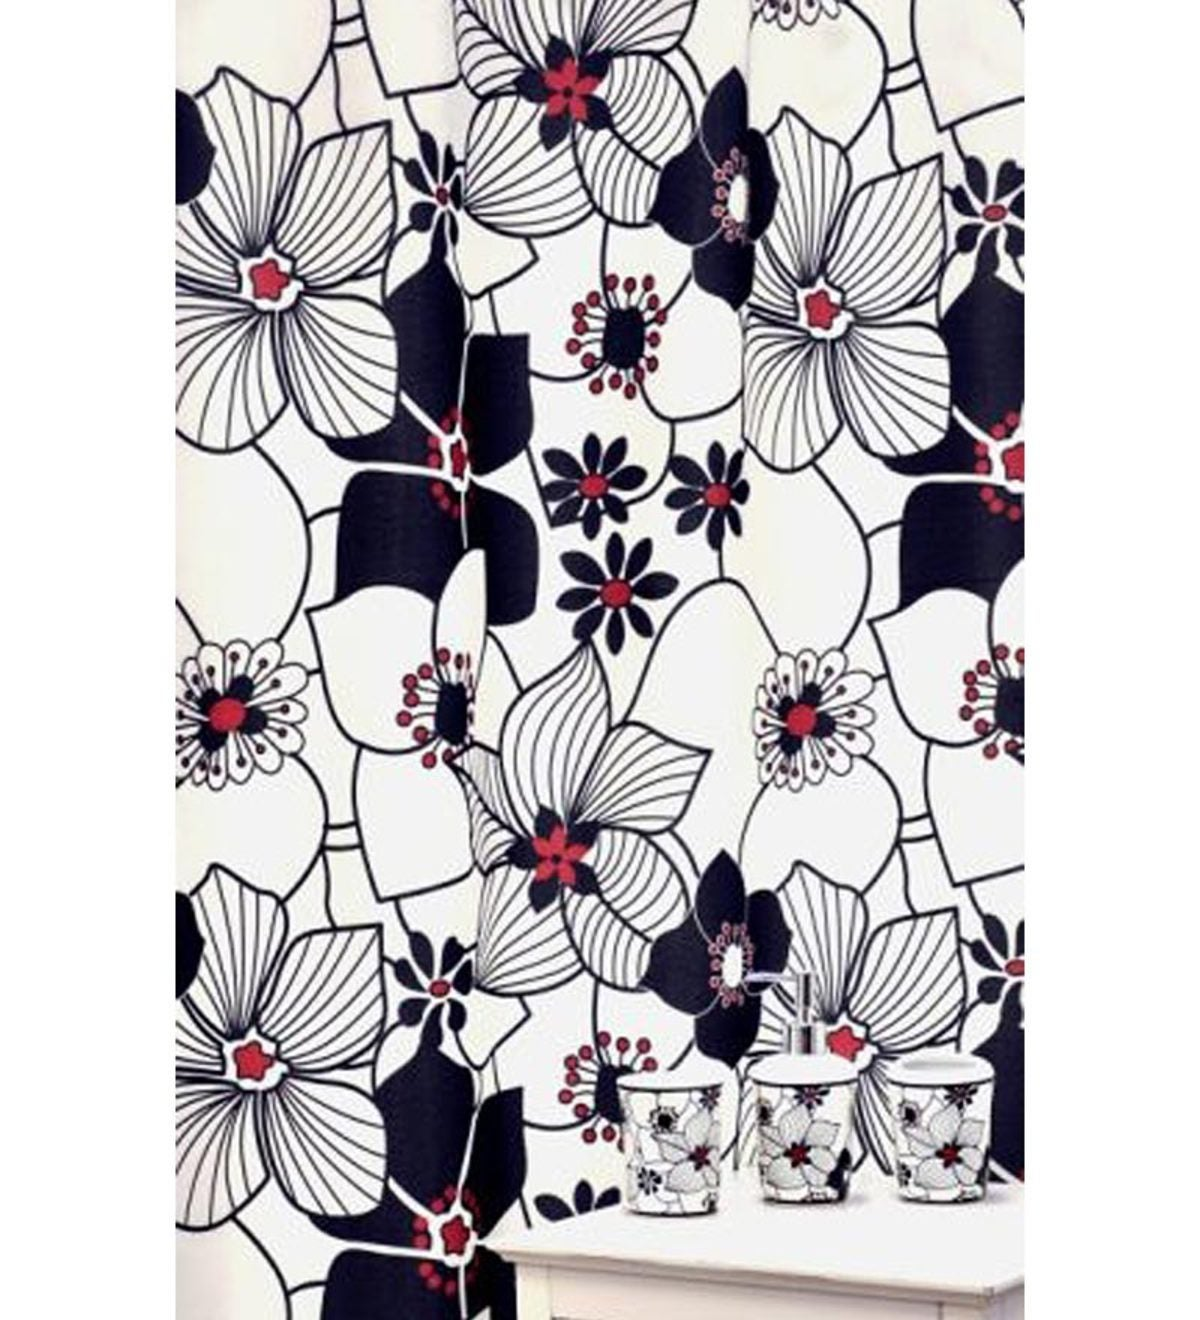 16 Piece Red And Black Daisies Shower Curtain And Bath Accessories Set Plowhearth